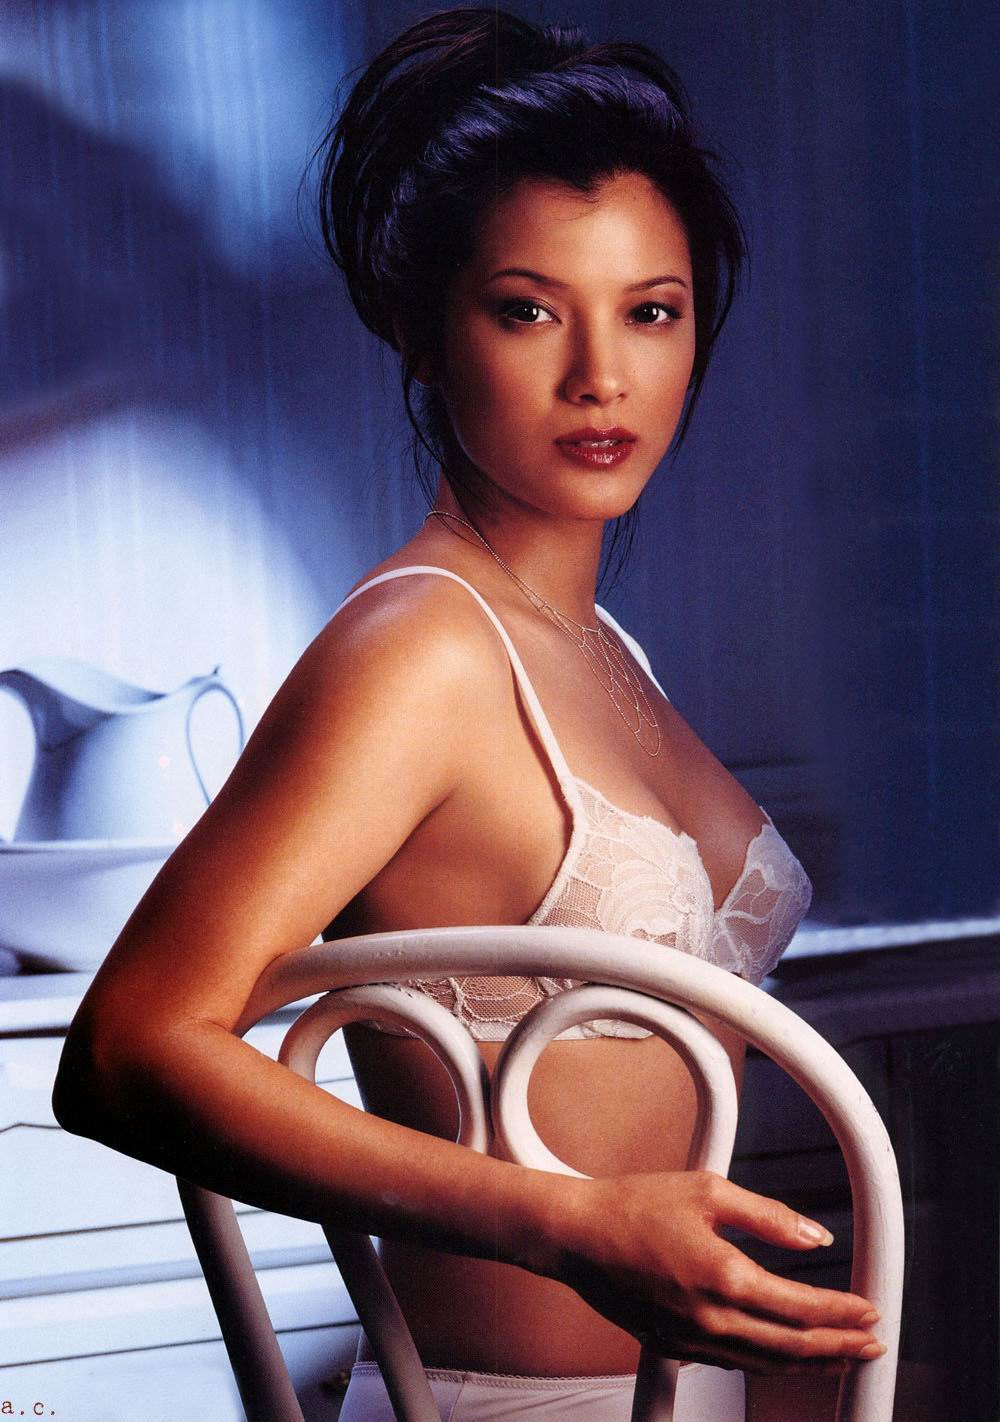 Kelly Hu Nude Pics & Videos, Sex Tape